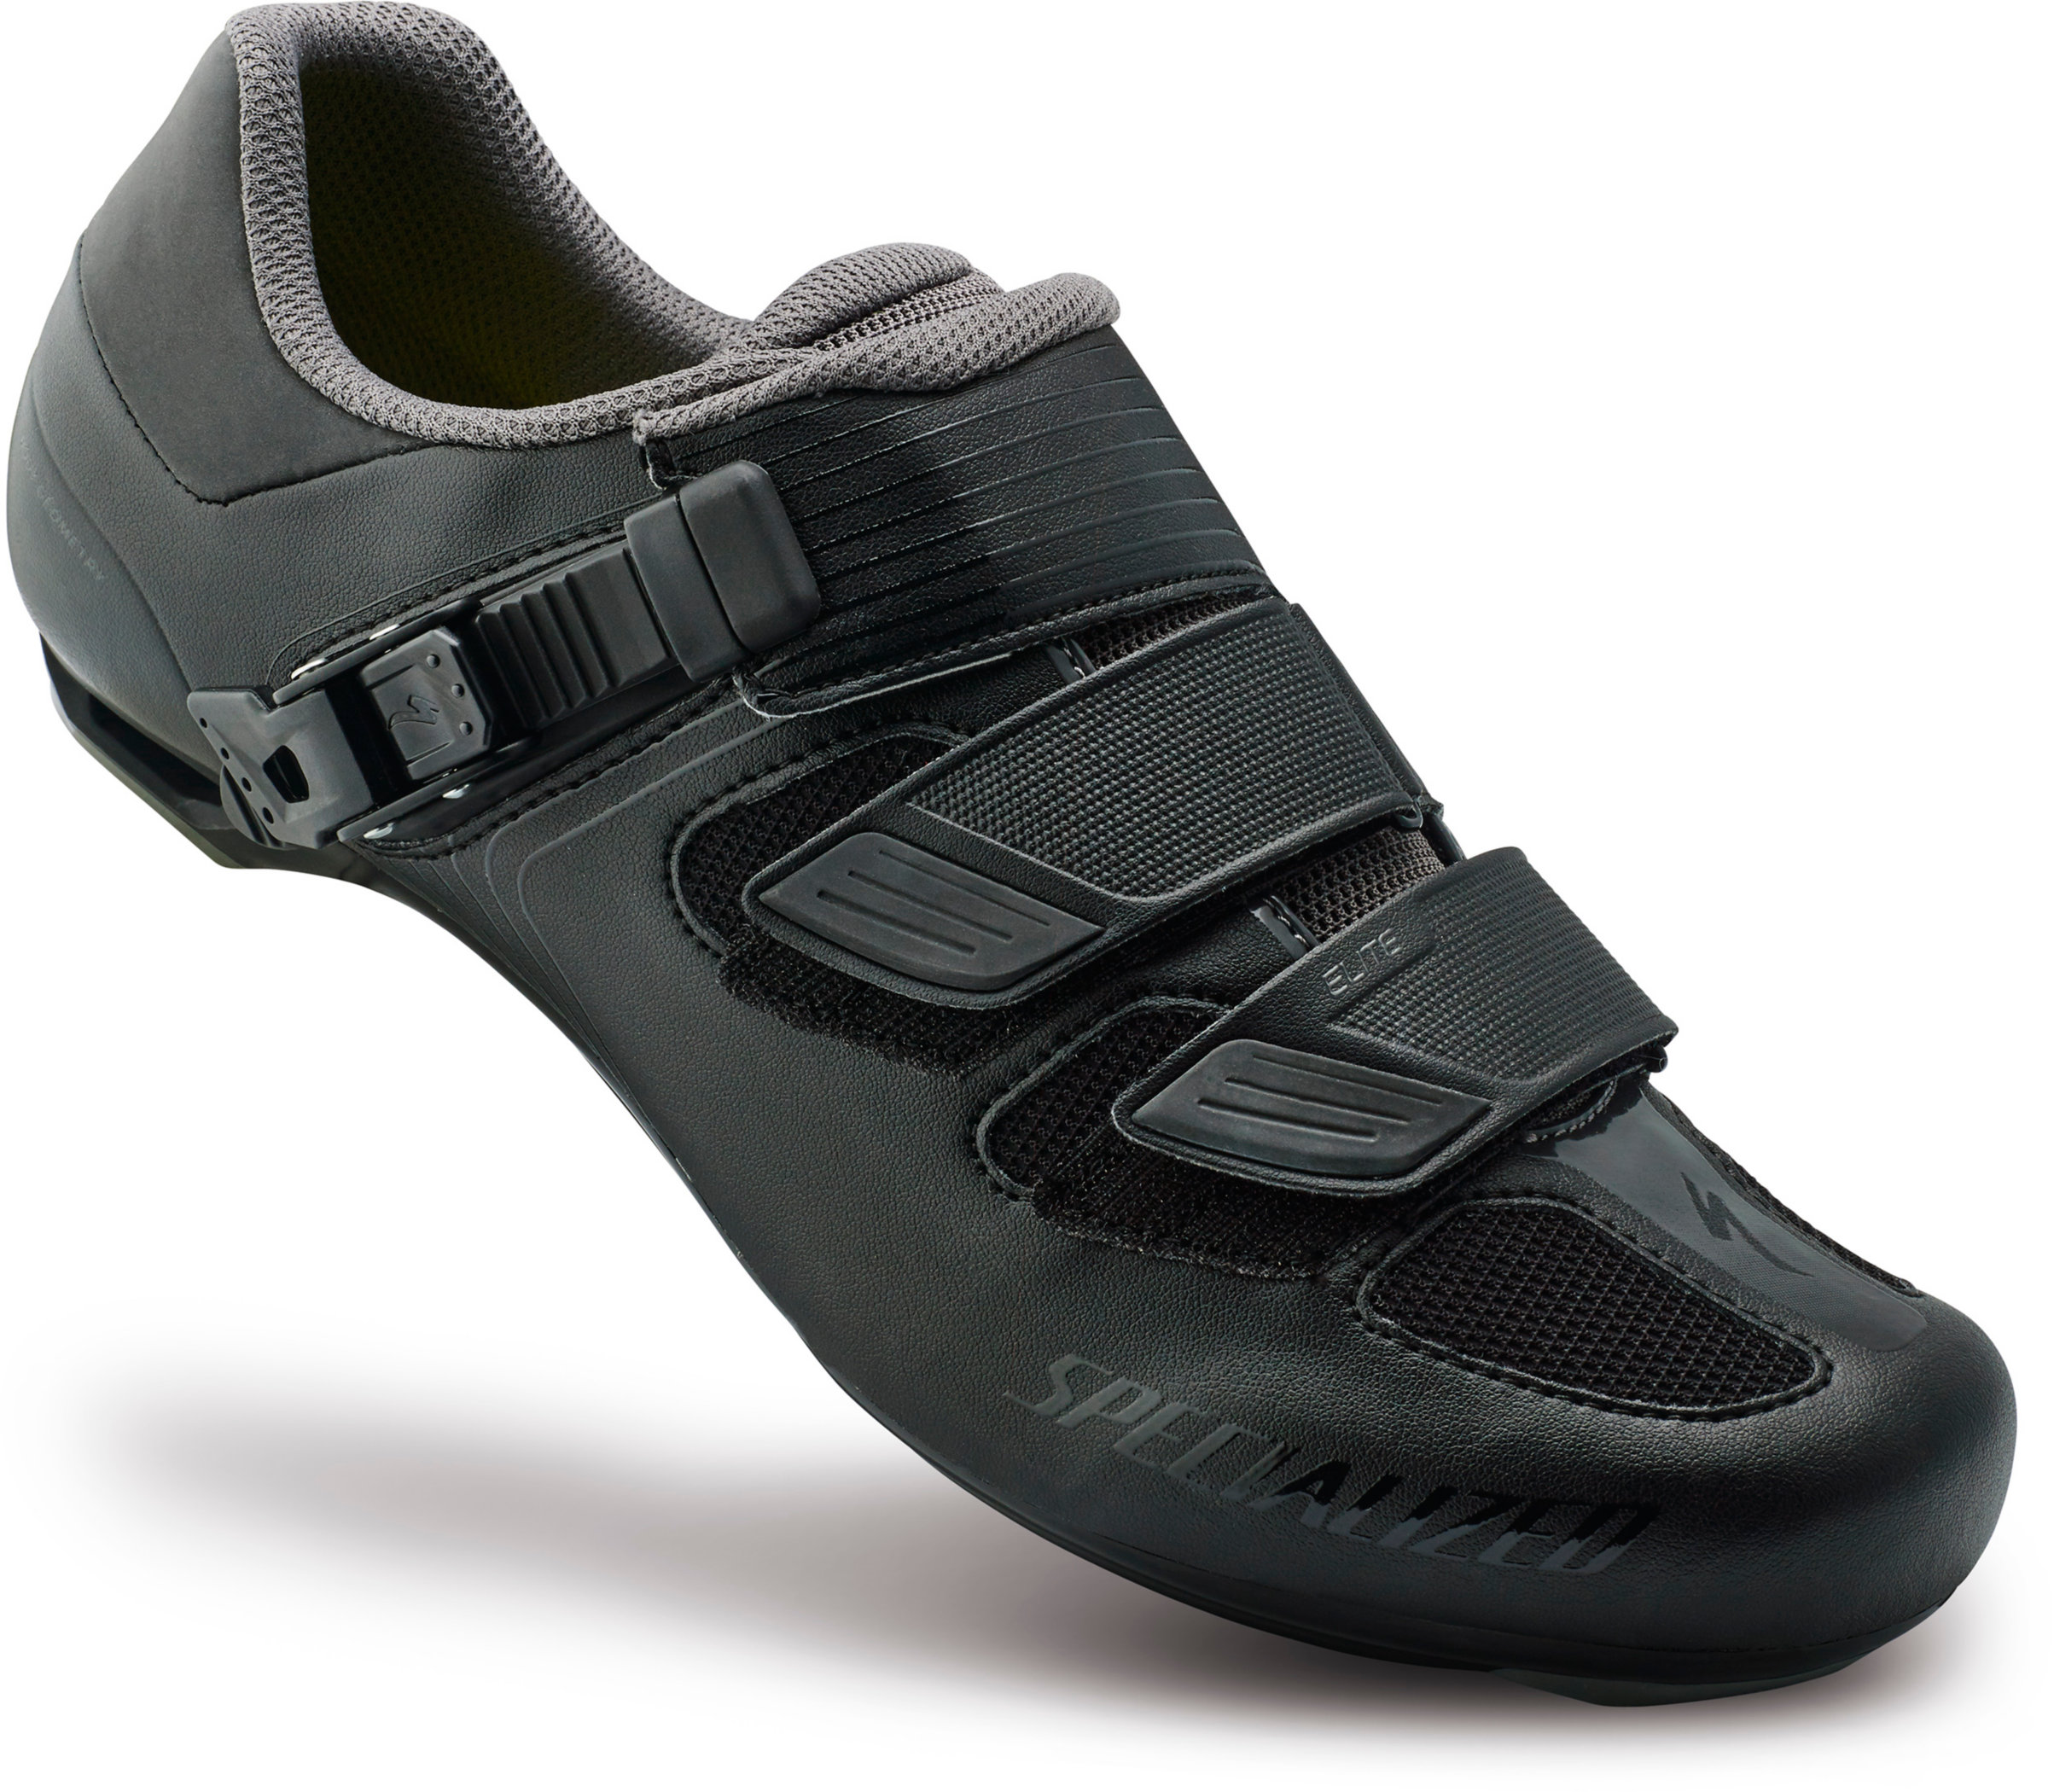 SPECIALIZED ELITE RD SHOE BLK 45/11.5 - Bikedreams & Dustbikes